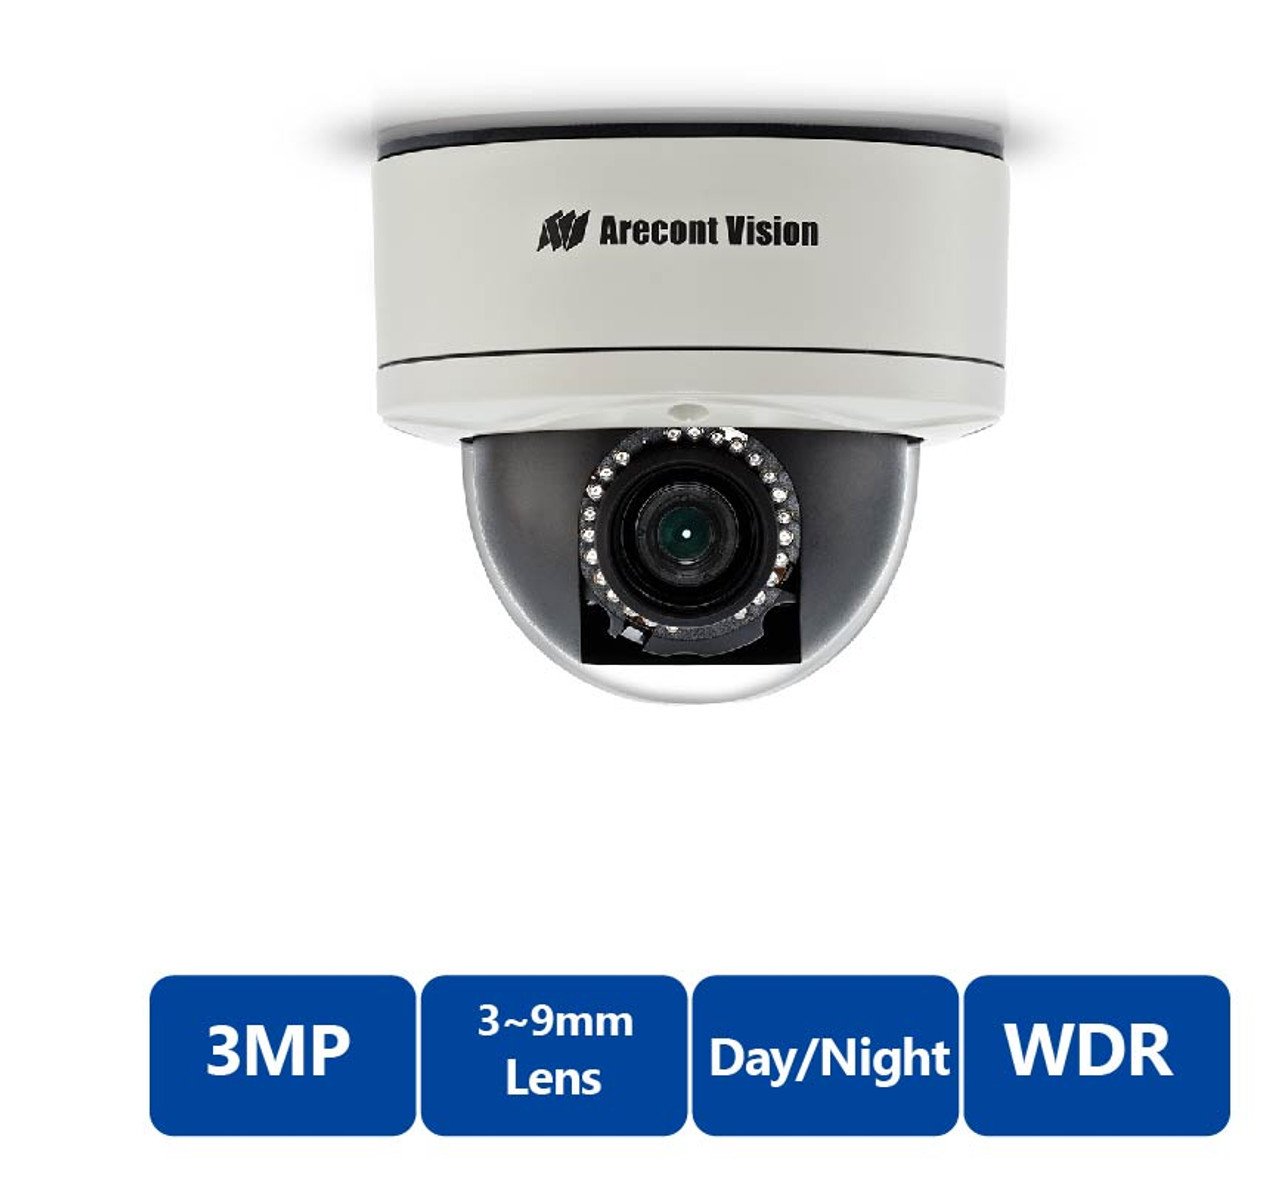 DOWNLOAD DRIVER: ARECONT VISION AV3225PMTIR IP CAMERA